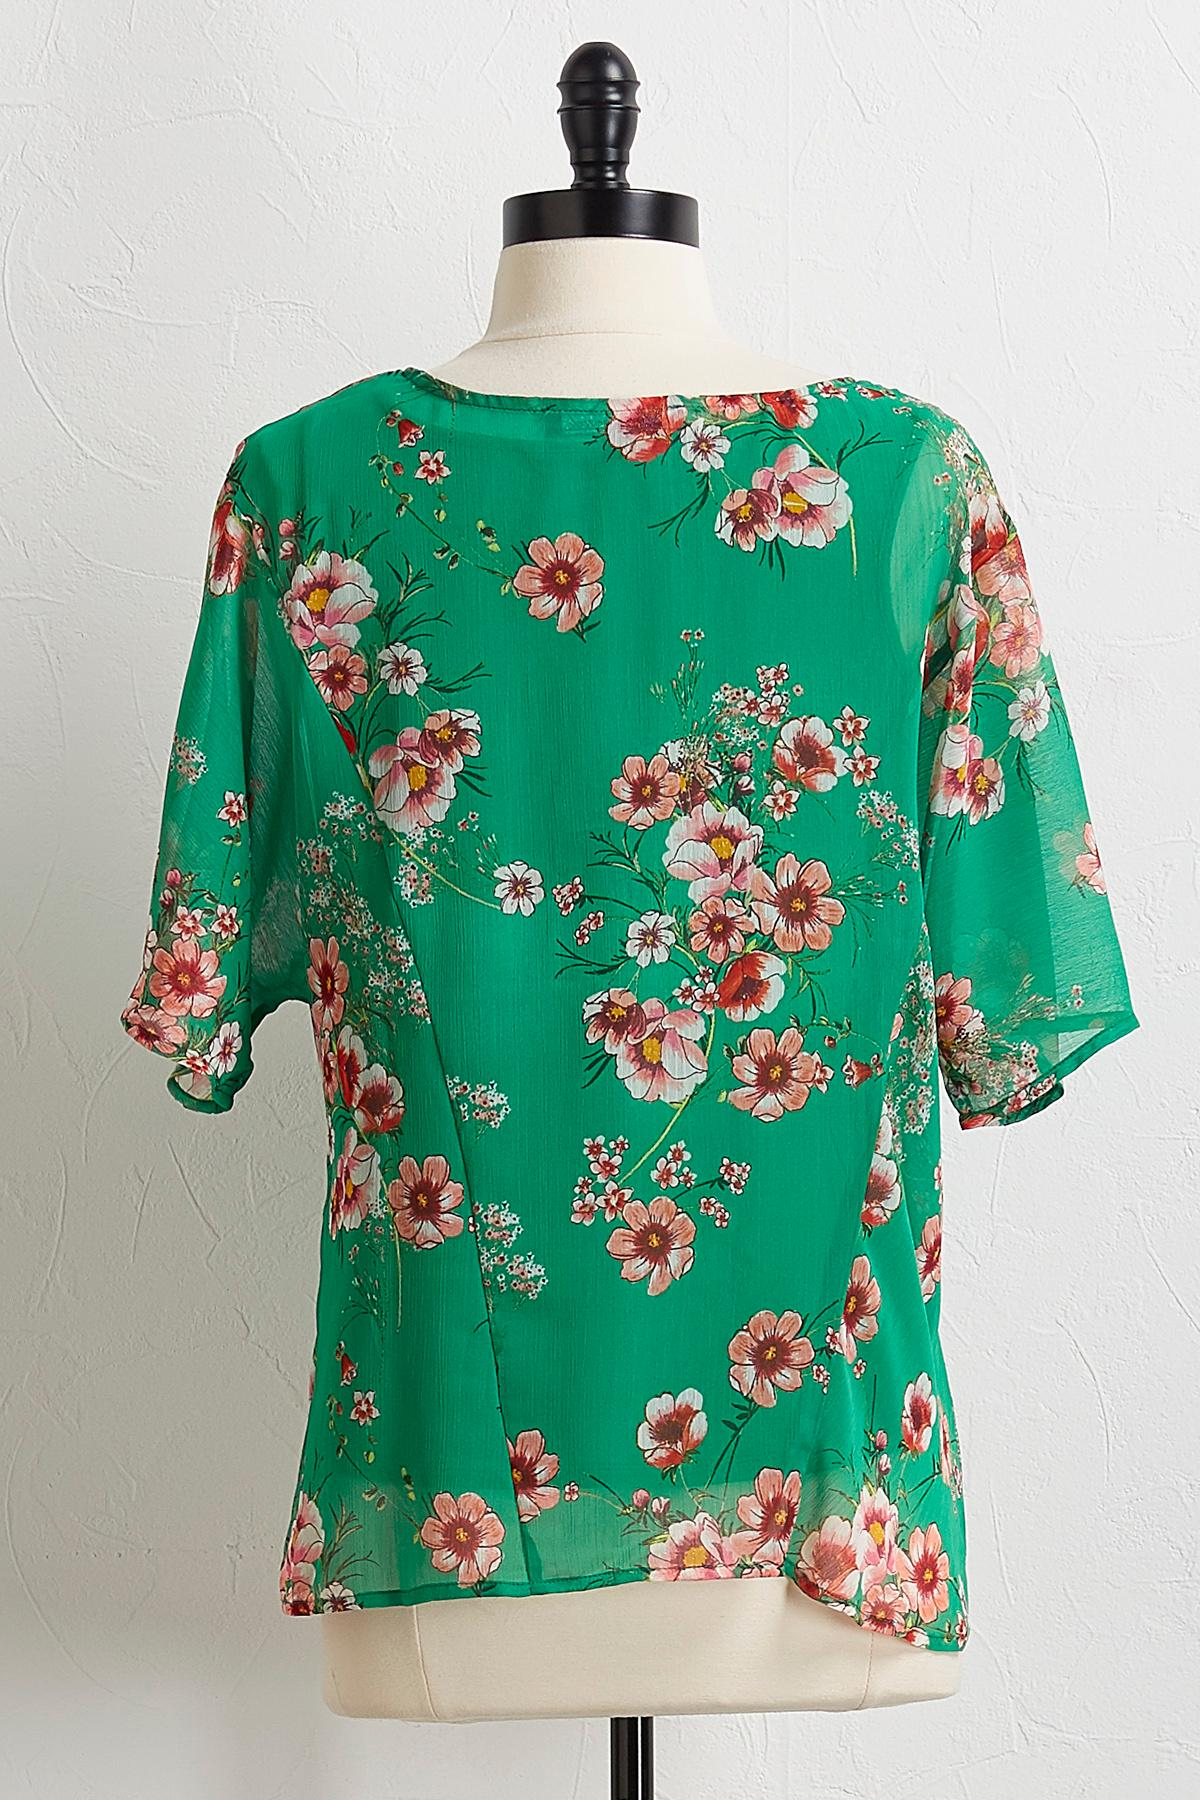 Knotted Green Floral Top